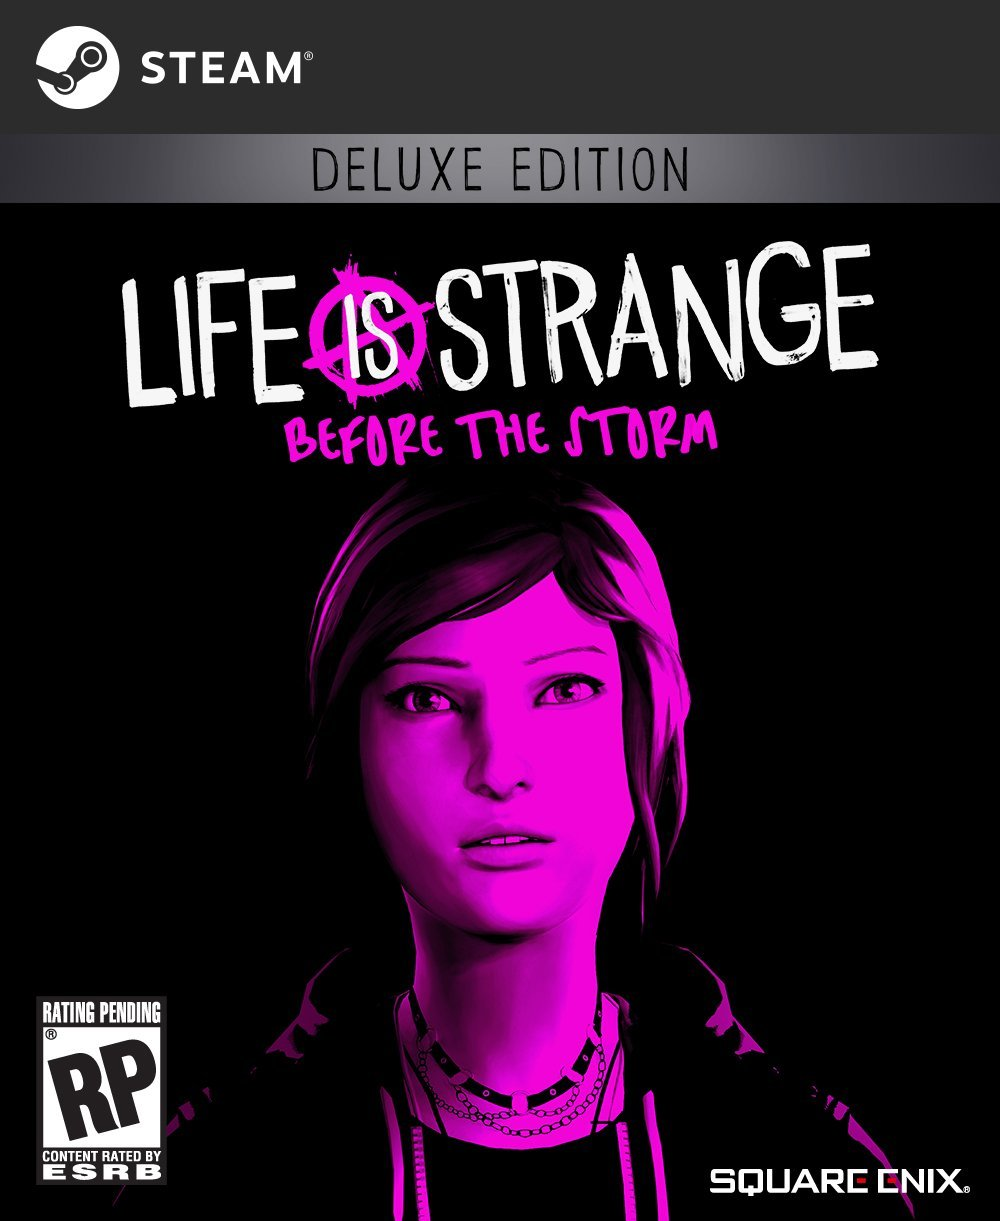 https://img5.downloadha.com/hosein/Game/August%202017/31/Life-is-Strange-Before-the-Storm-Deluxe-Edition-pc-cover-large.jpg